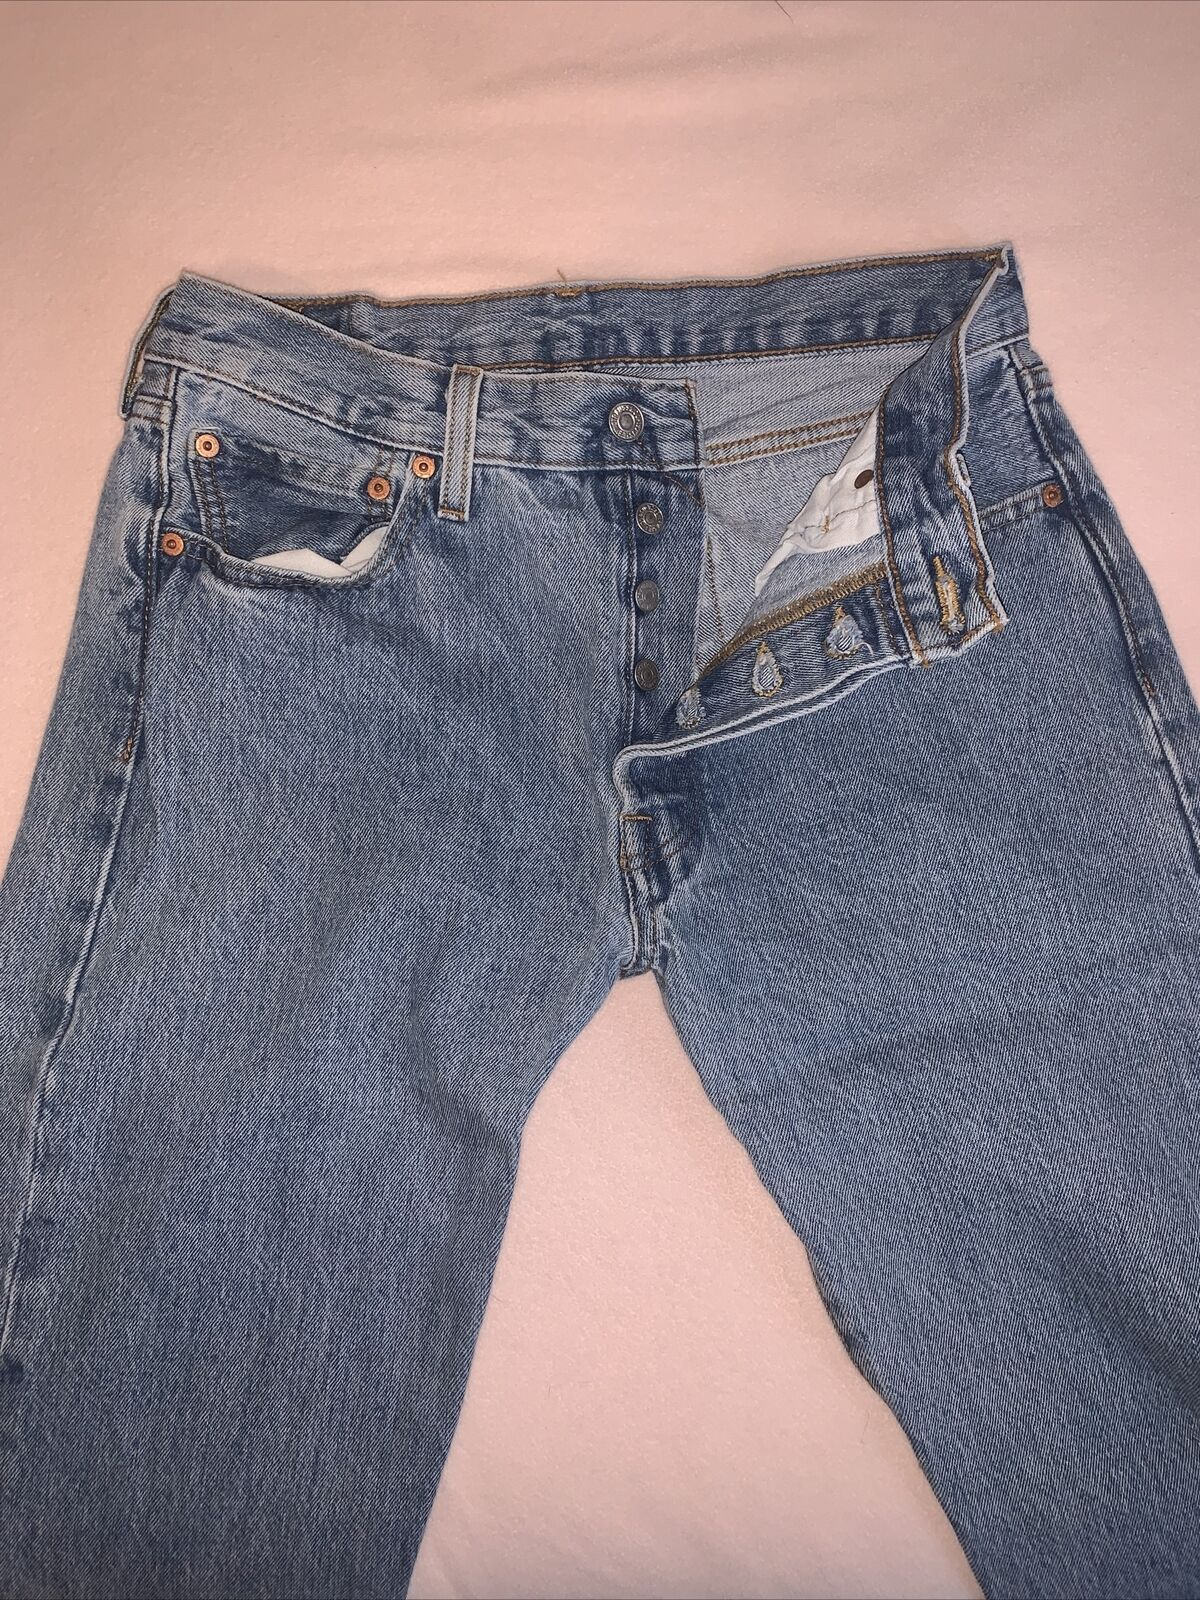 levis 501 made in usa 32x30 - image 2